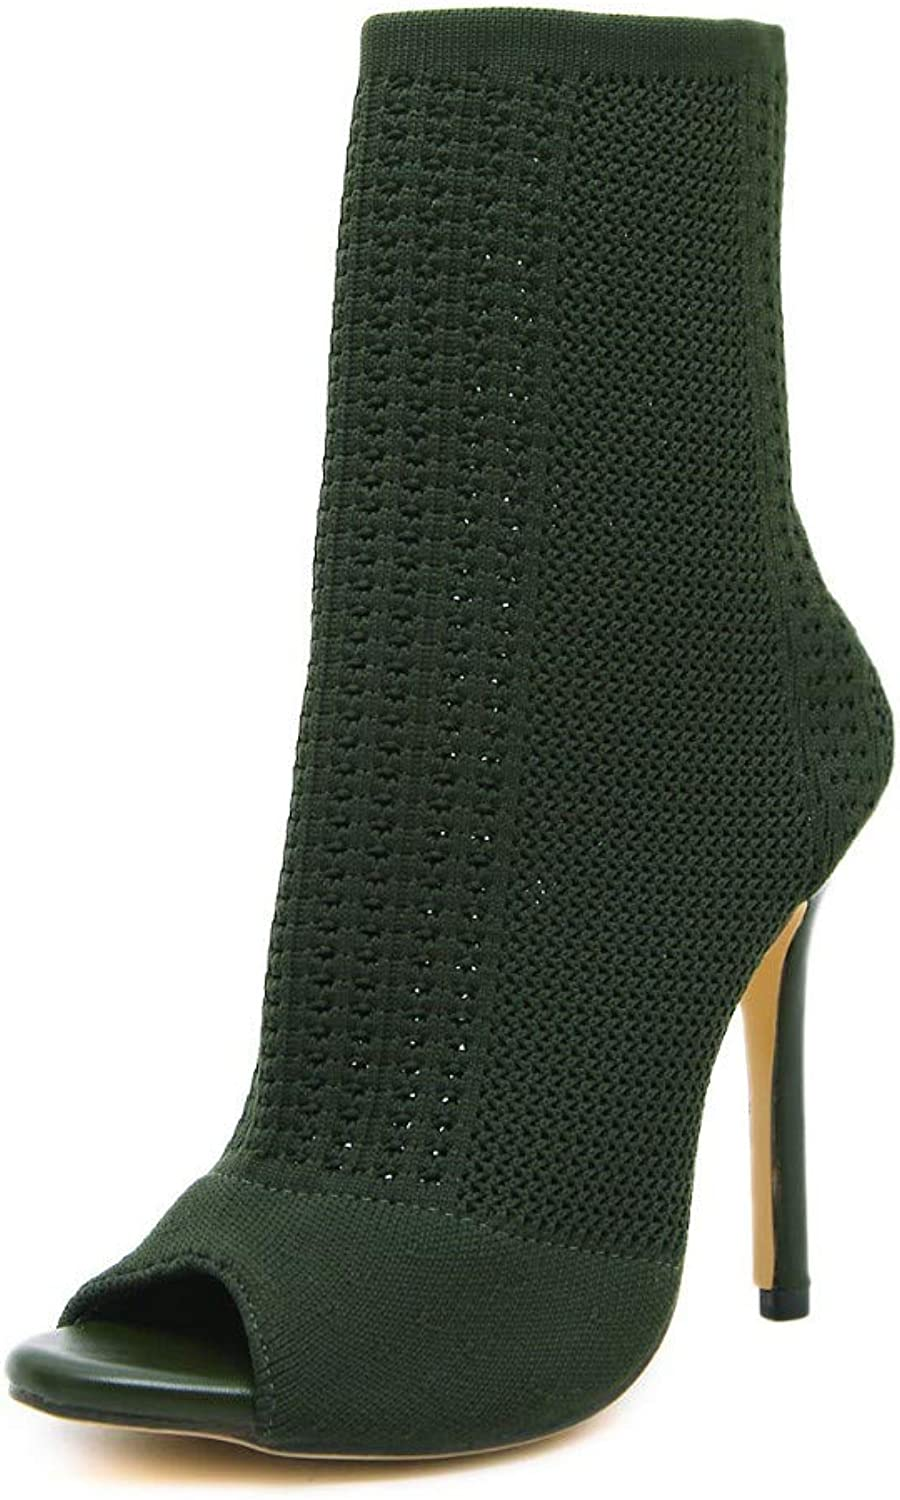 JQfashion Women's High-Heeled shoes Air-Permeable Knitted Socks Boots Hollow Fish-Mouth Boots